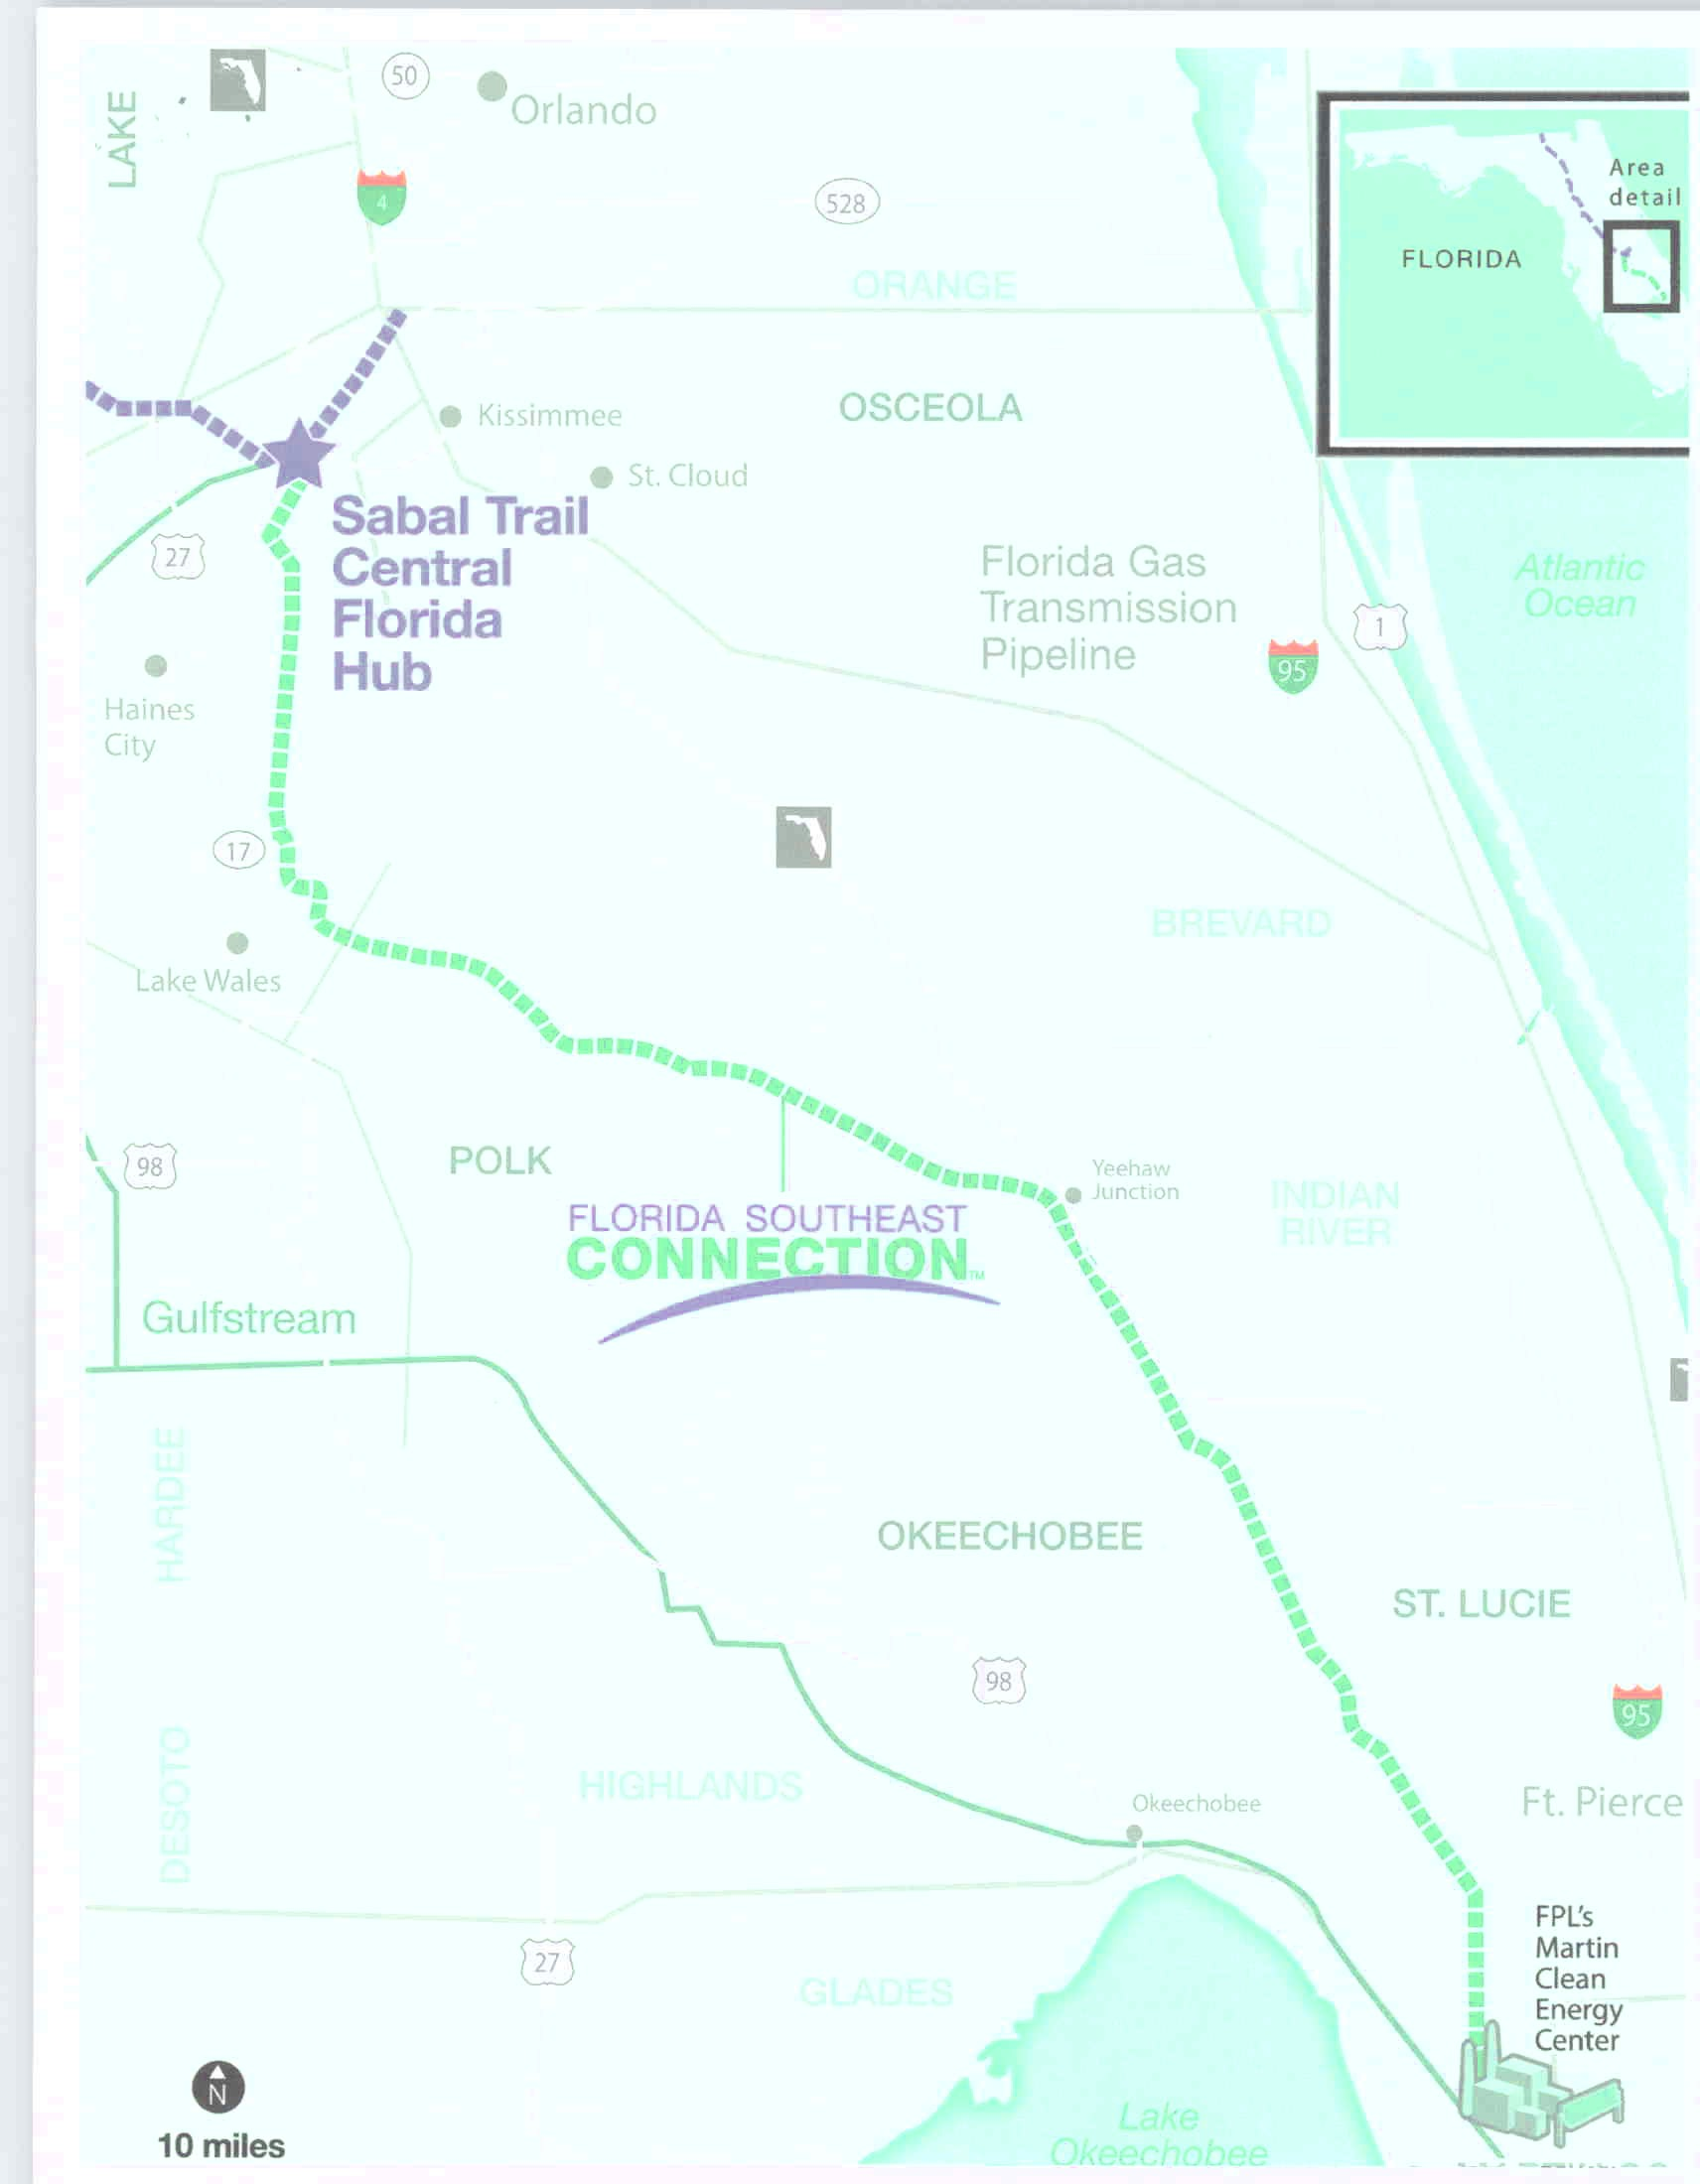 Florida Southeast Connection map, in Comments of the Olney-Alger Family Trust regarding the planned F, by Olney-Alger Family Trust, for SpectraBusters.org, 18 November 2013